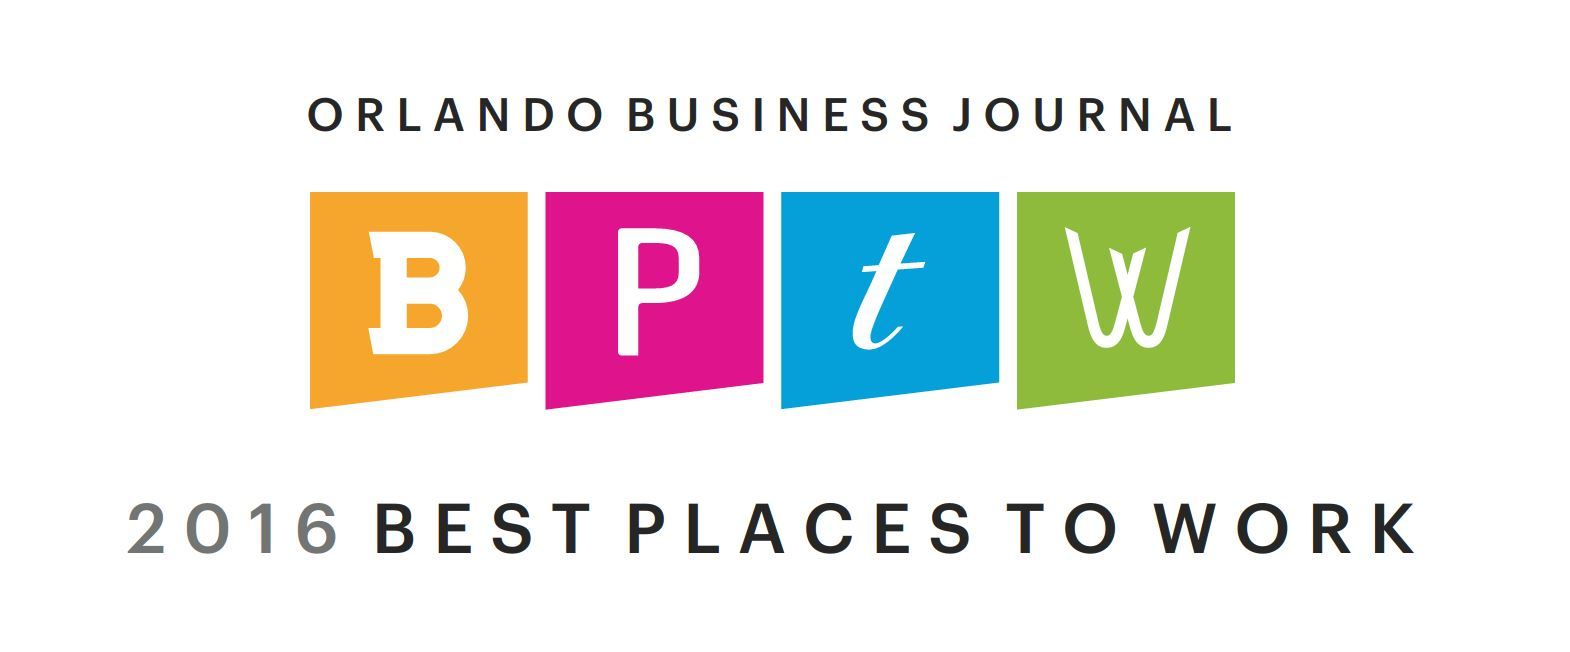 Orlando Business Journal Best Place to Work